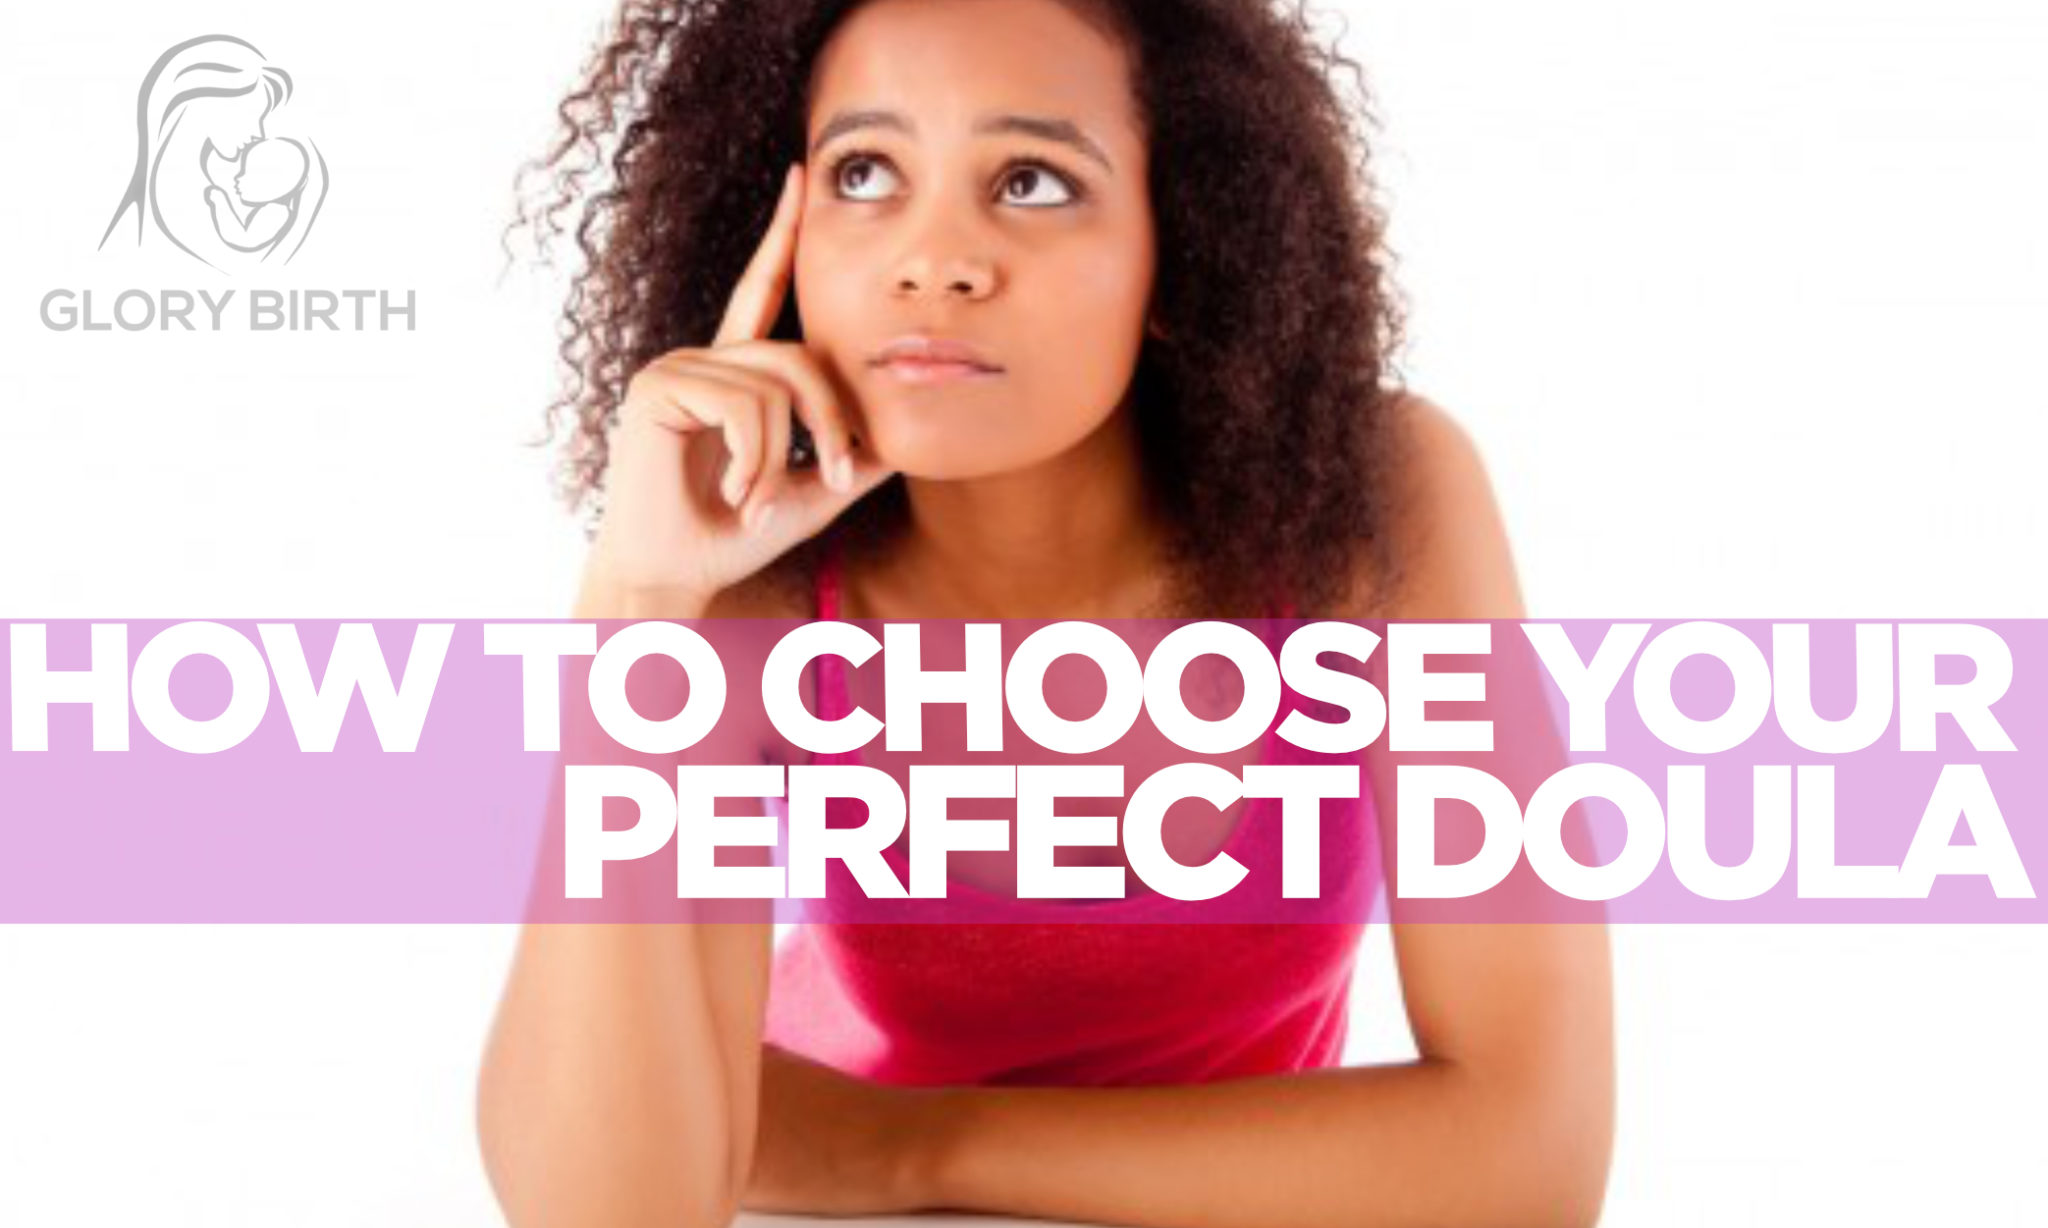 How To Choose Your Perfect Doula